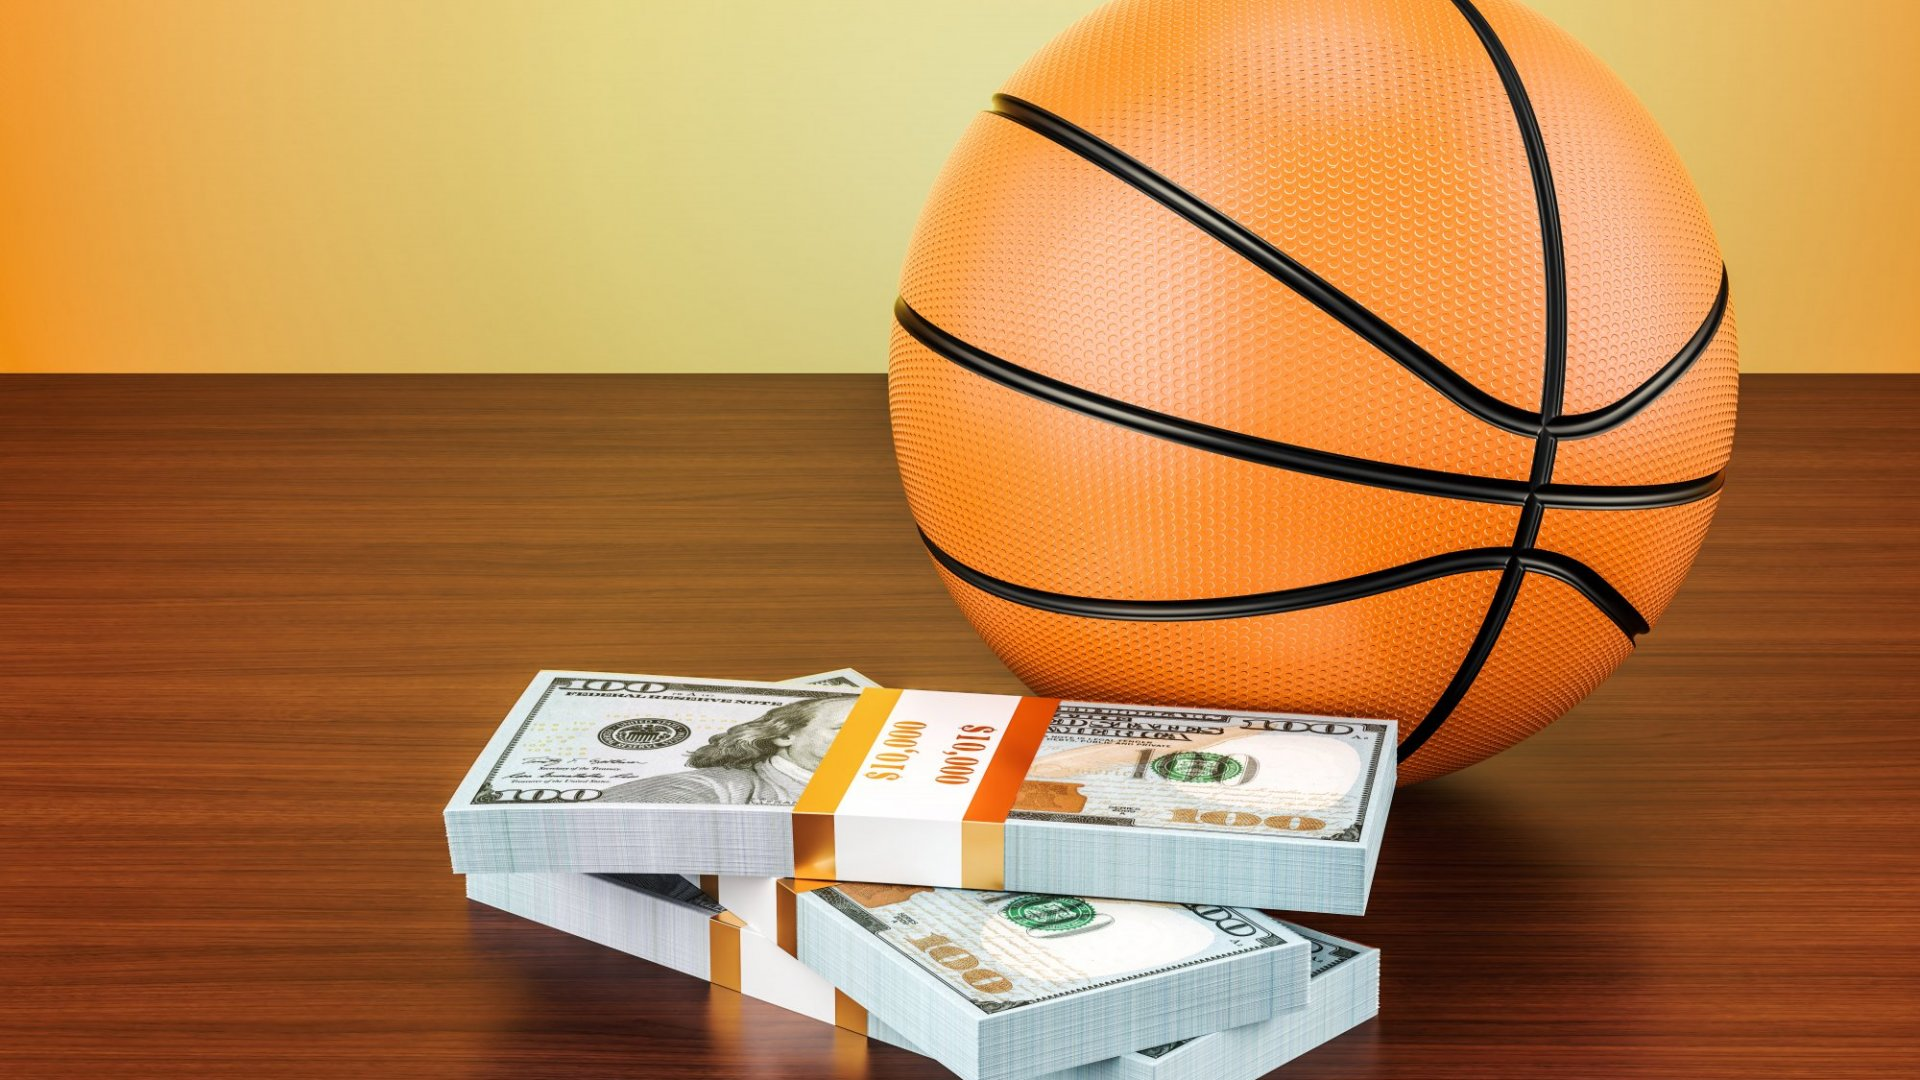 Sports Bet Discovery Startup Raises $3 Million Led by Early FanDuel Investor